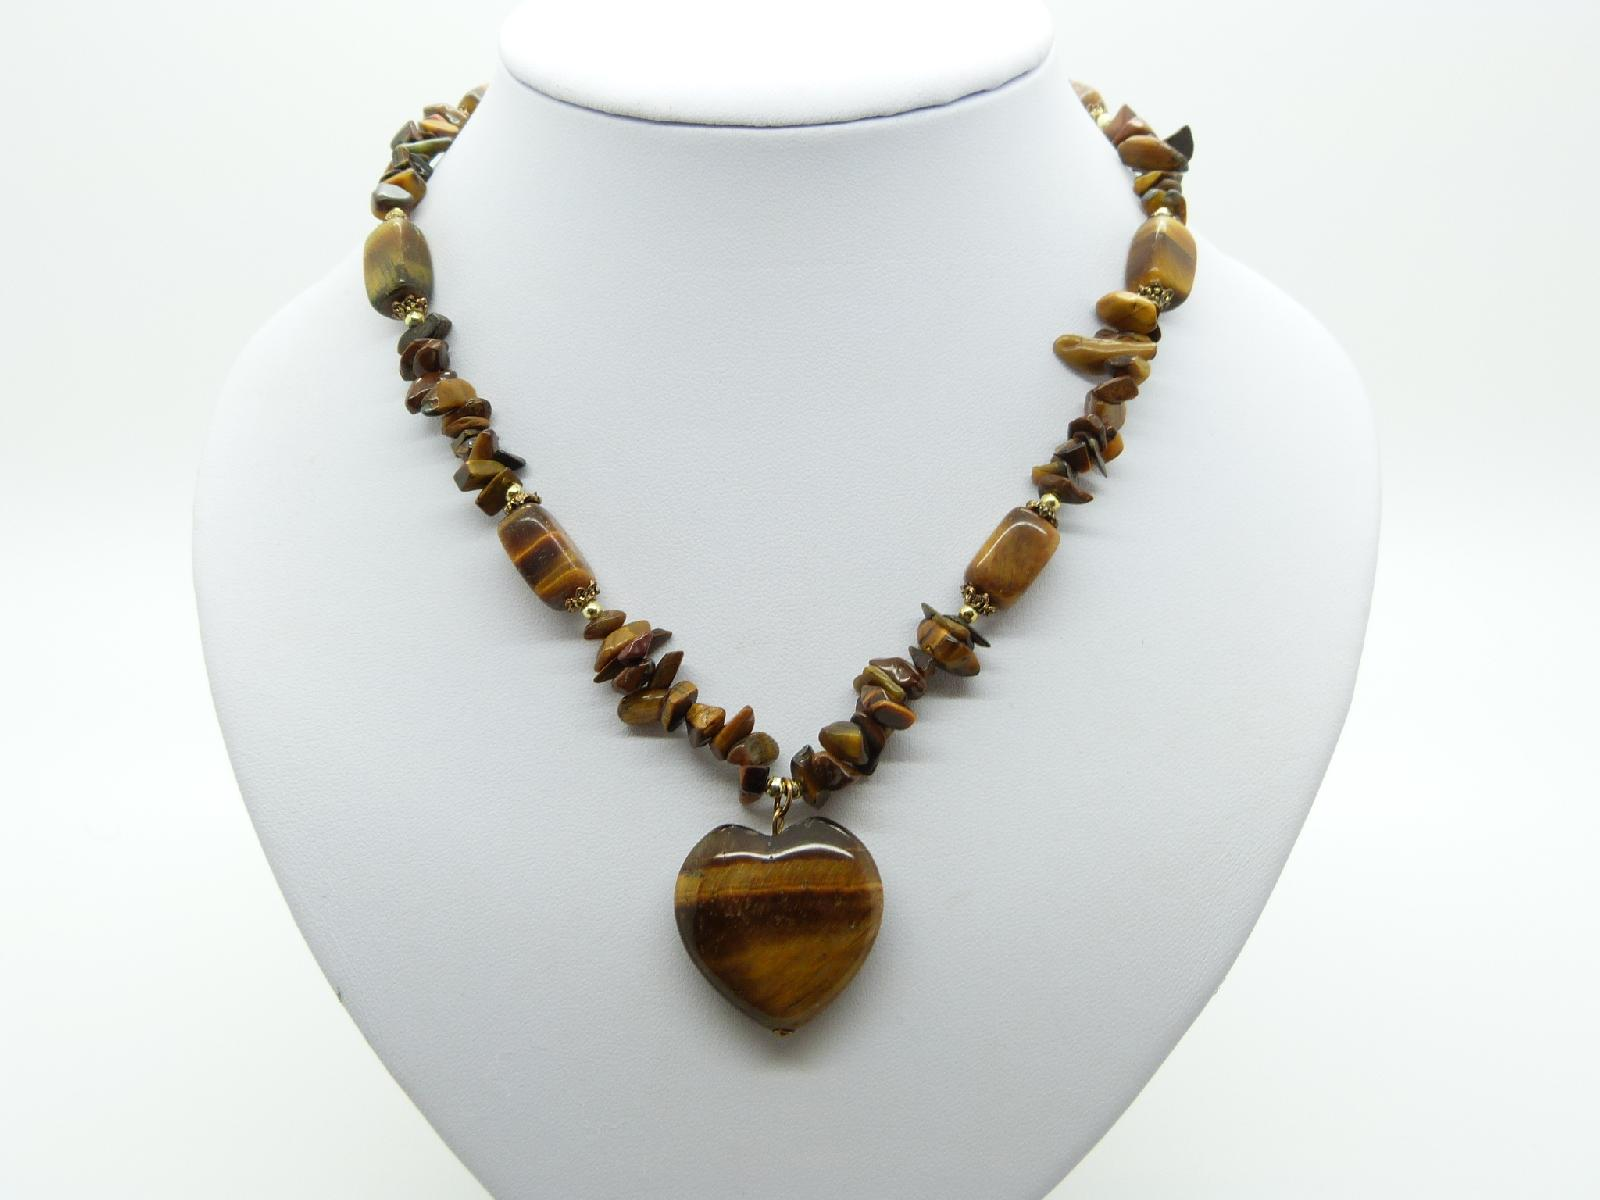 Lovely Real Tigers Eye Bead Necklace with Tigers Eye Heart Pendant 50cms